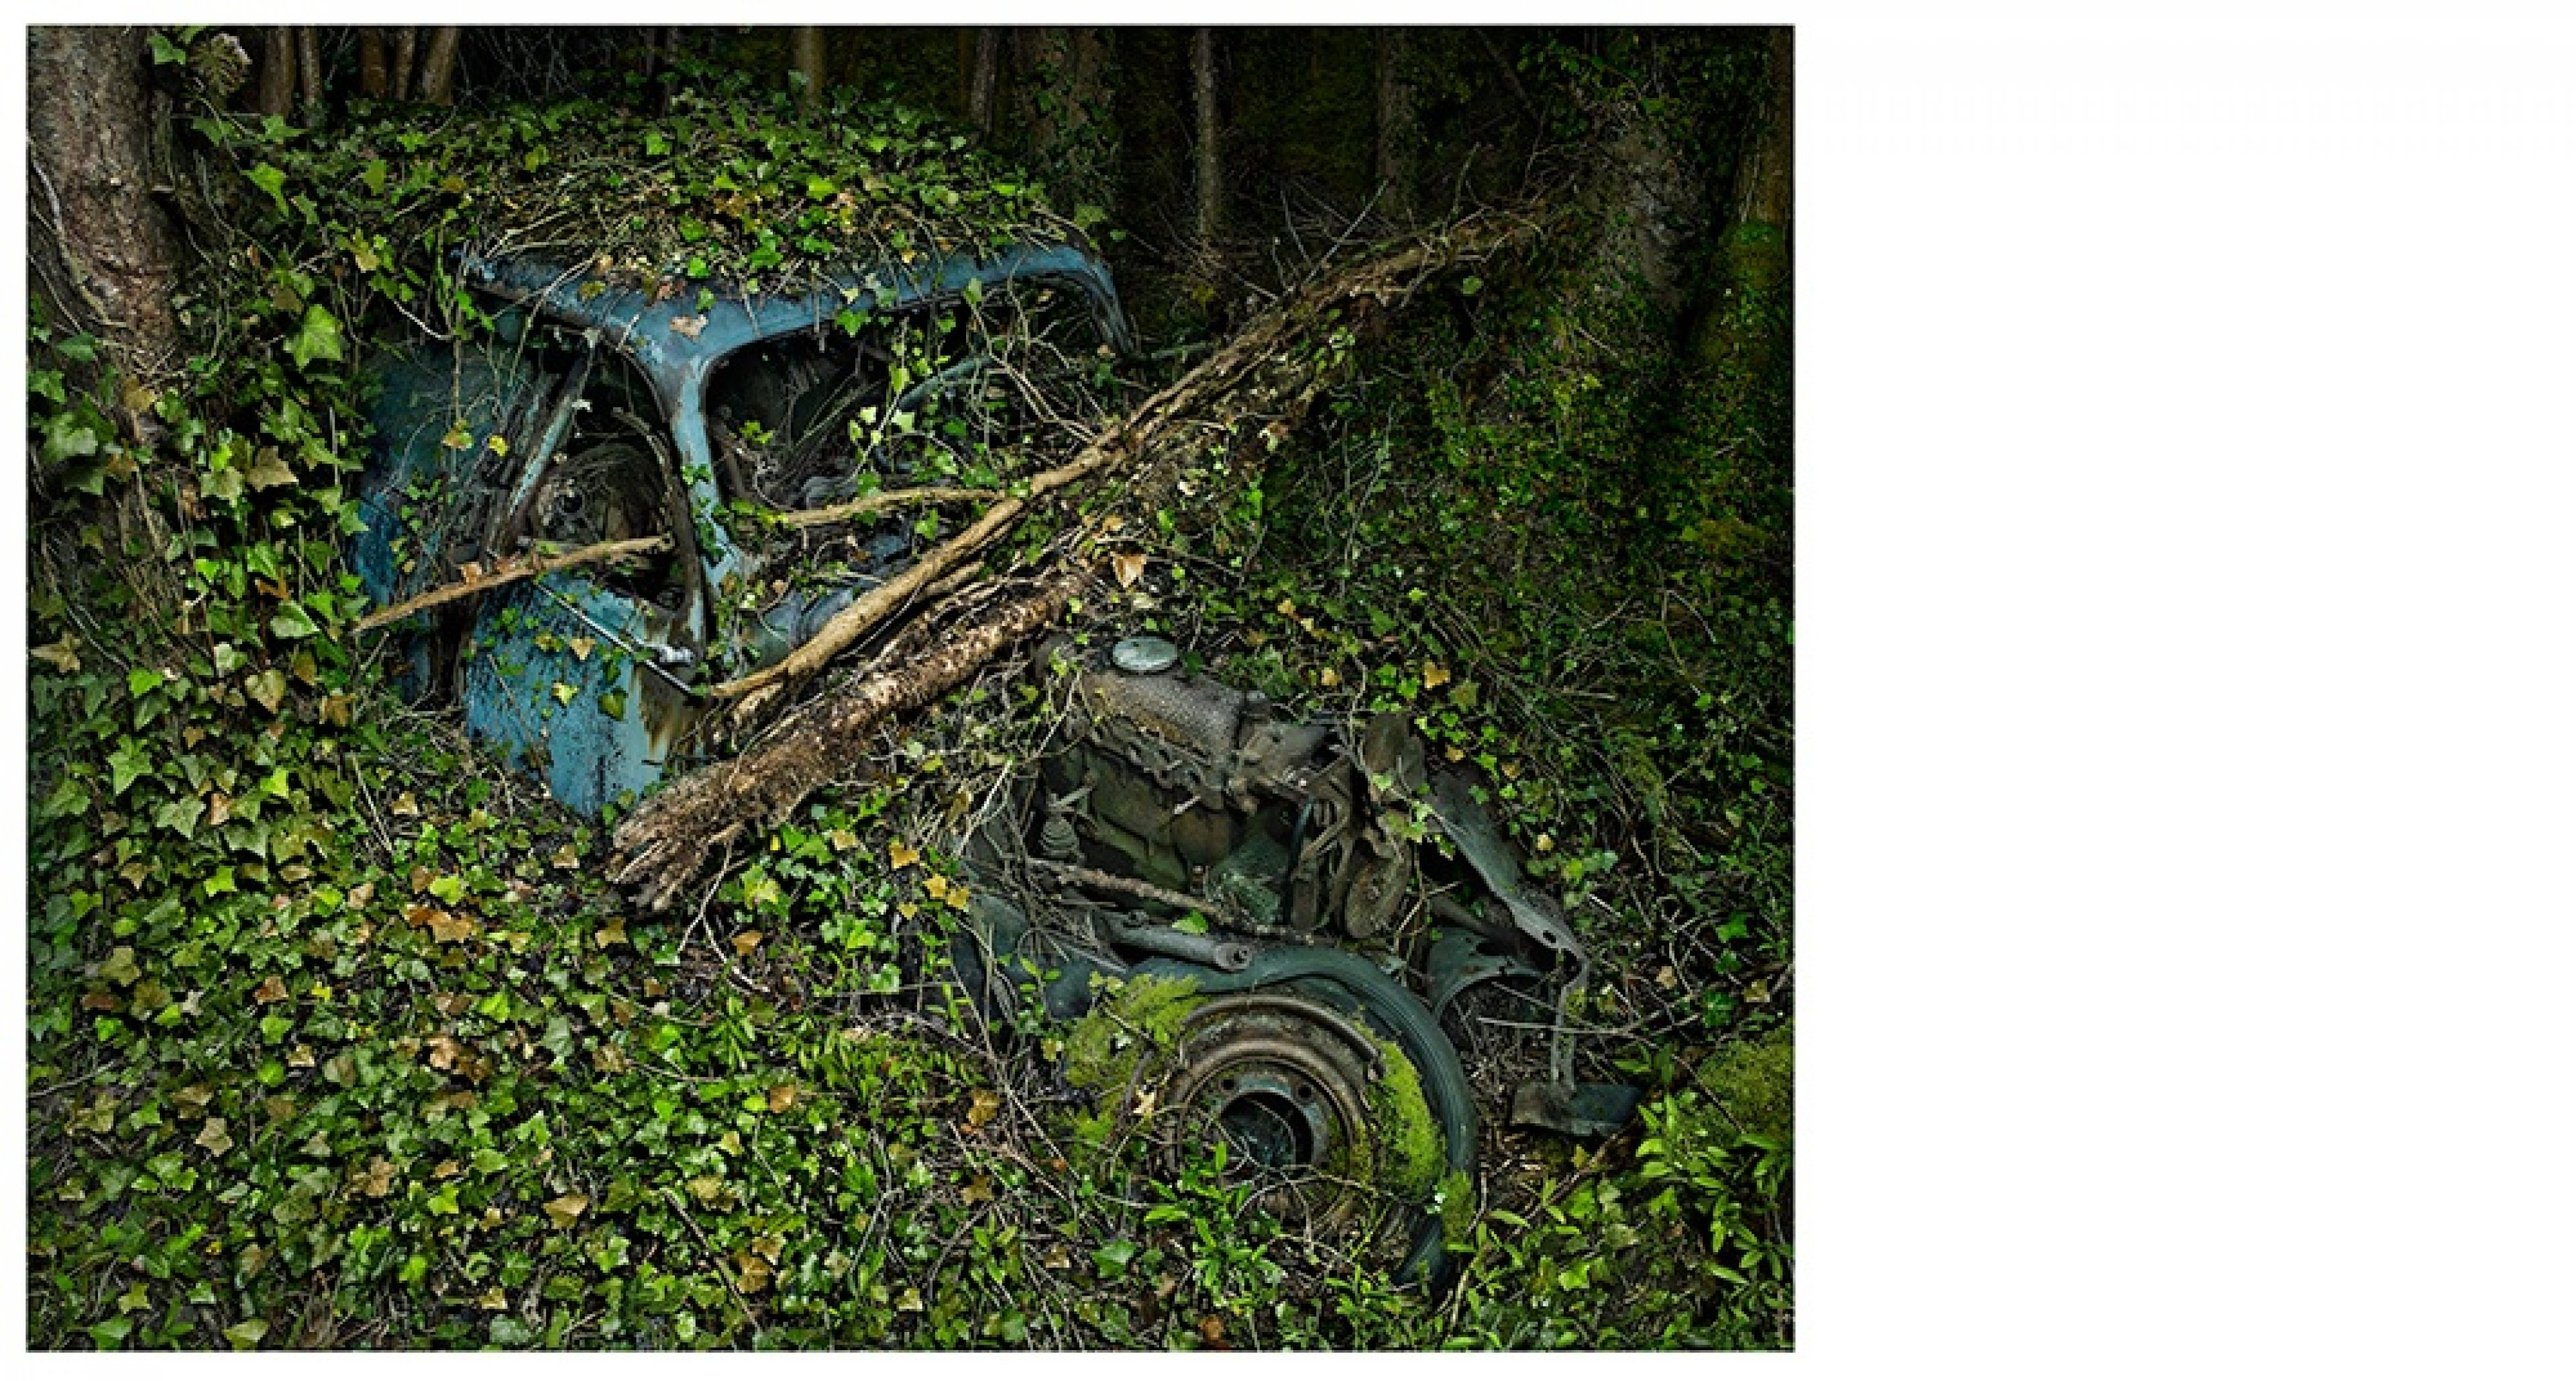 Peter Lippmann, Citroën Traction 7, 2012 From Paradise Parking series C-print, 75 × 100 cm Collection of the artist © Peter Lippmann